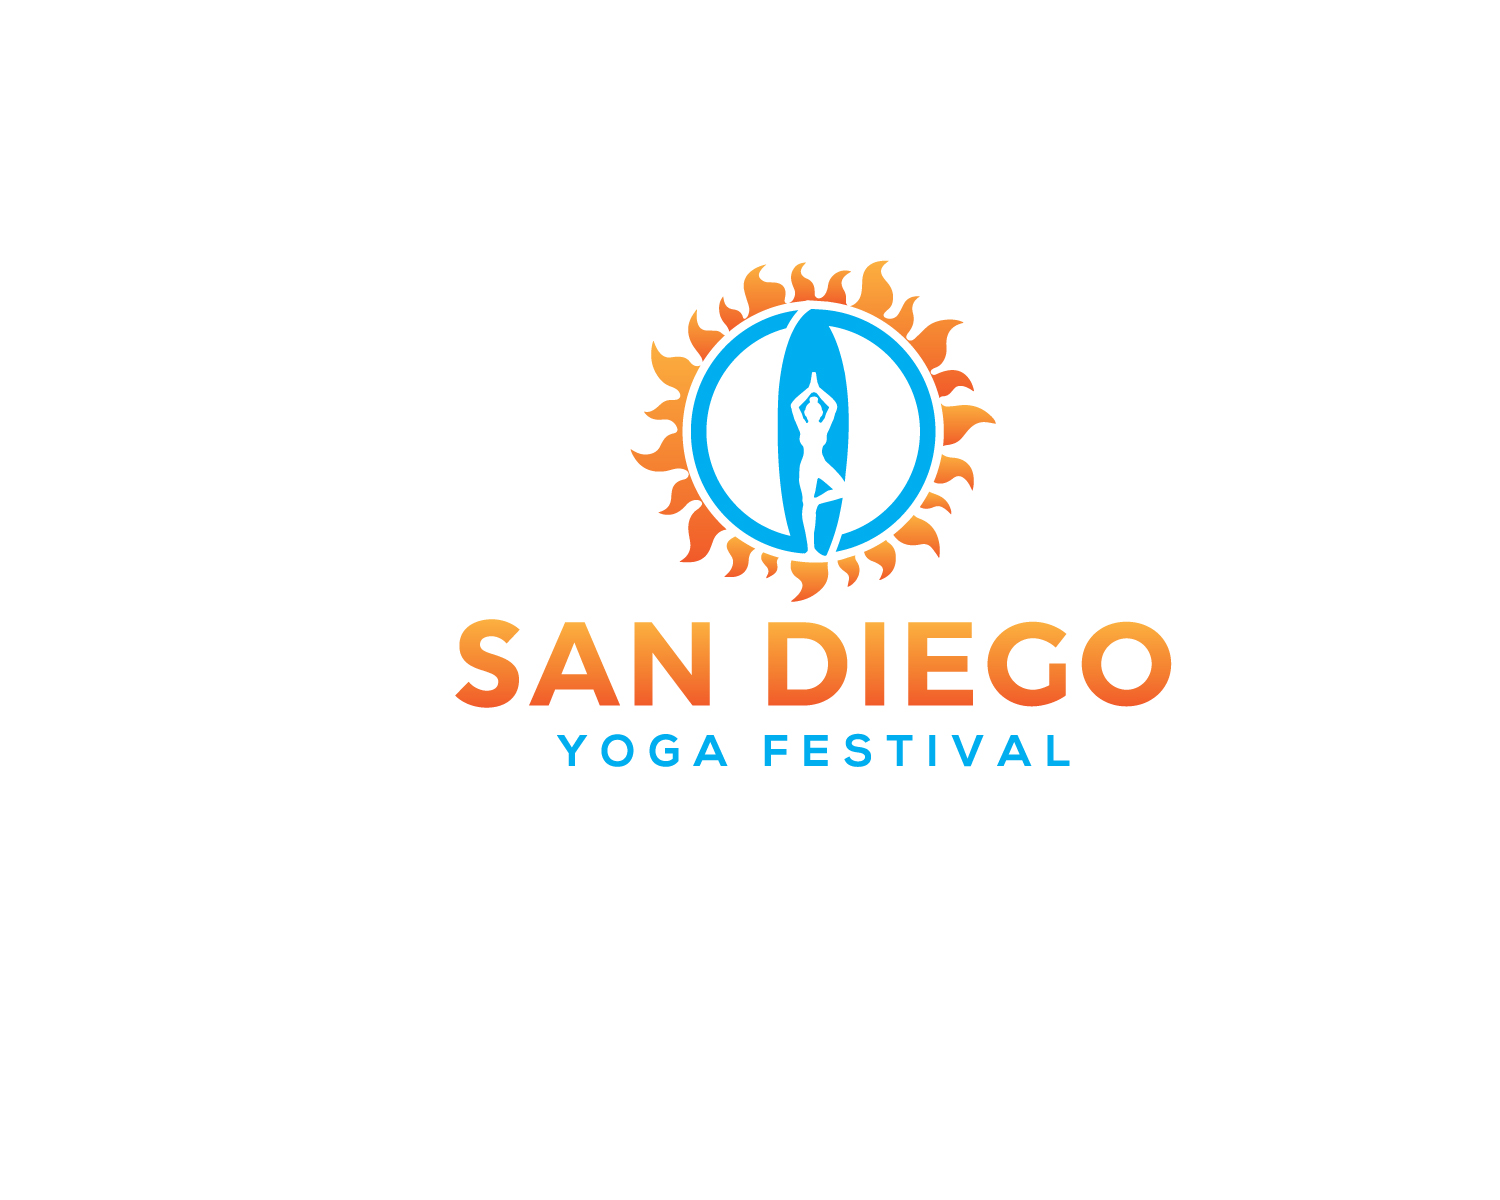 Yoga With Shawna and San Diego Yoga Festival